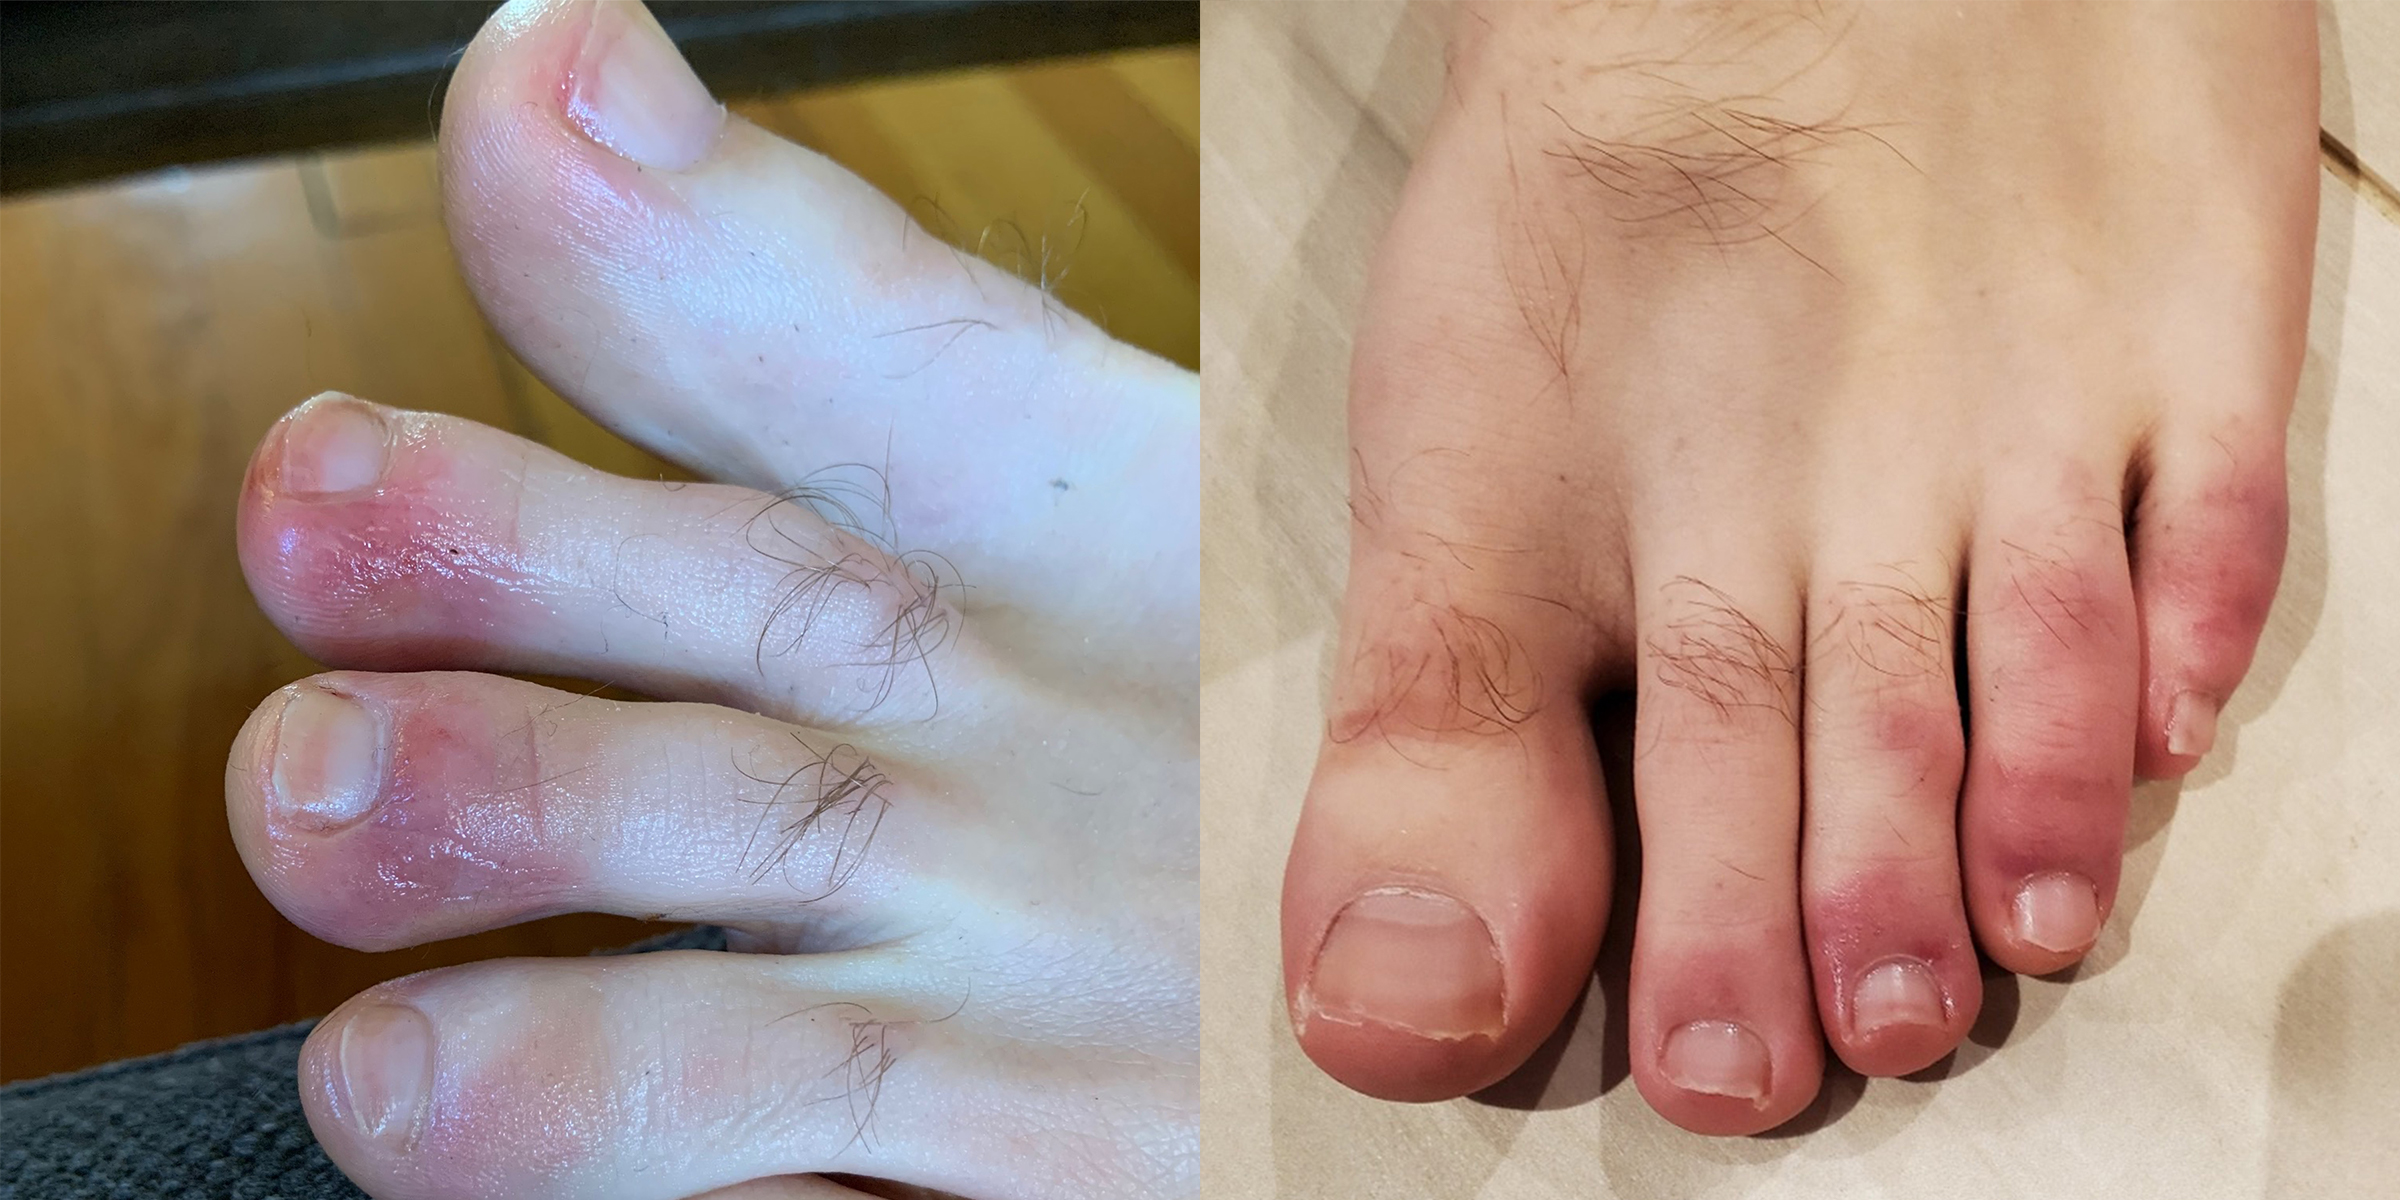 Covid Toes: Dermatologists and